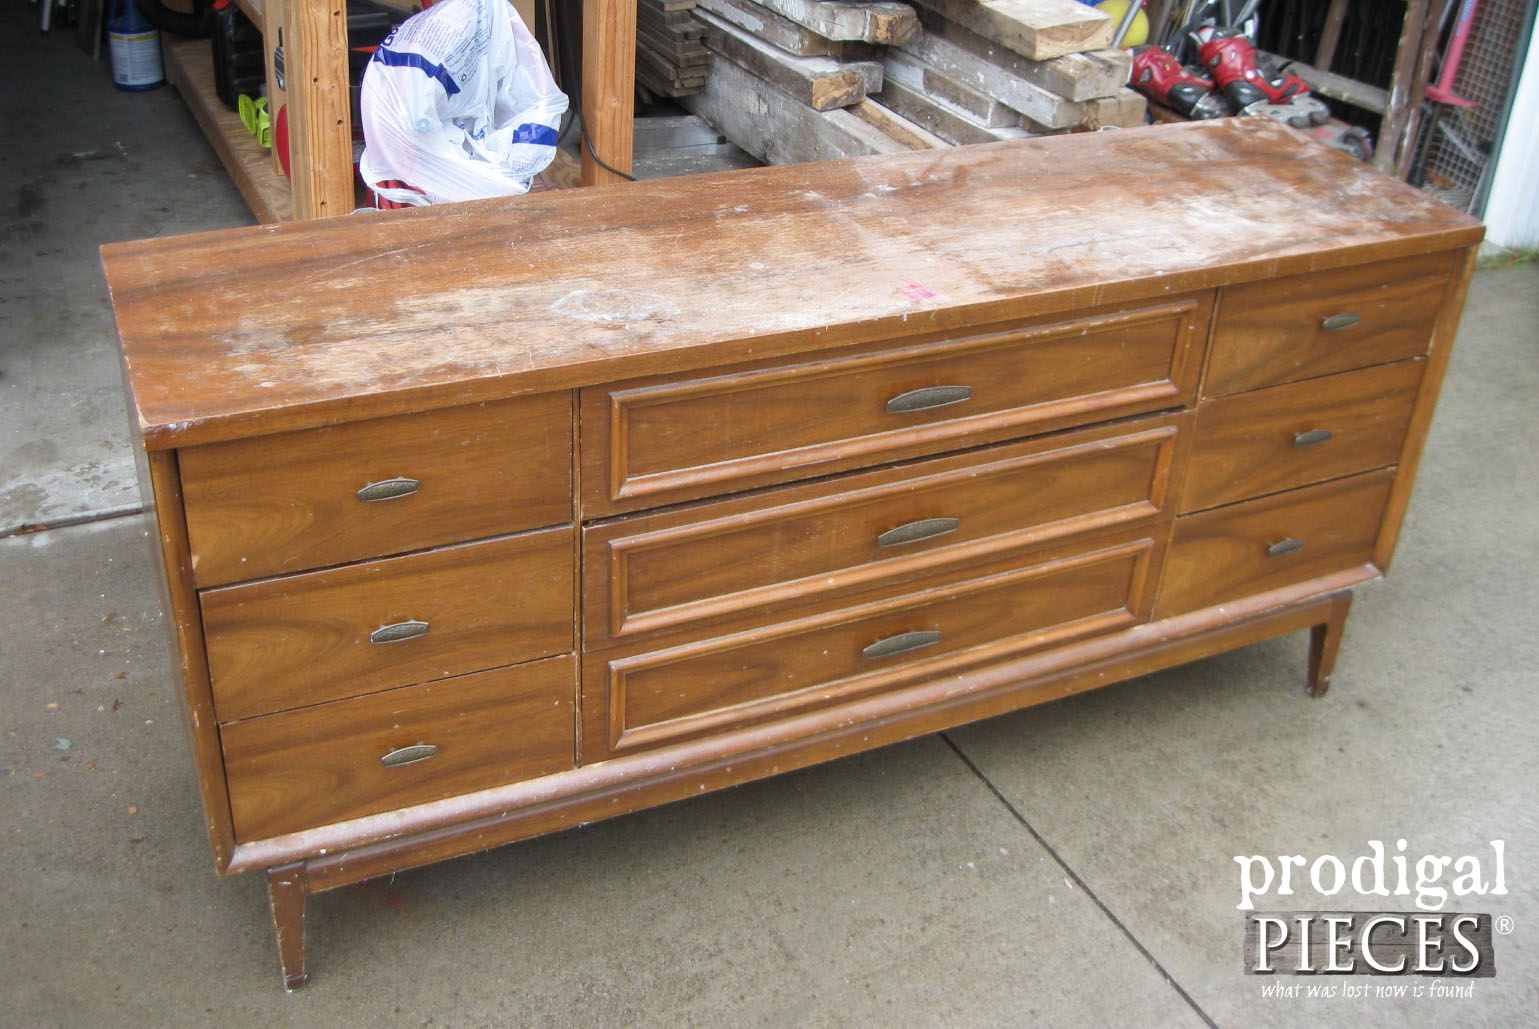 Top of Mid Century Modern Dresser with Damage | Prodigal Pieces | www.prodigalpieces.com